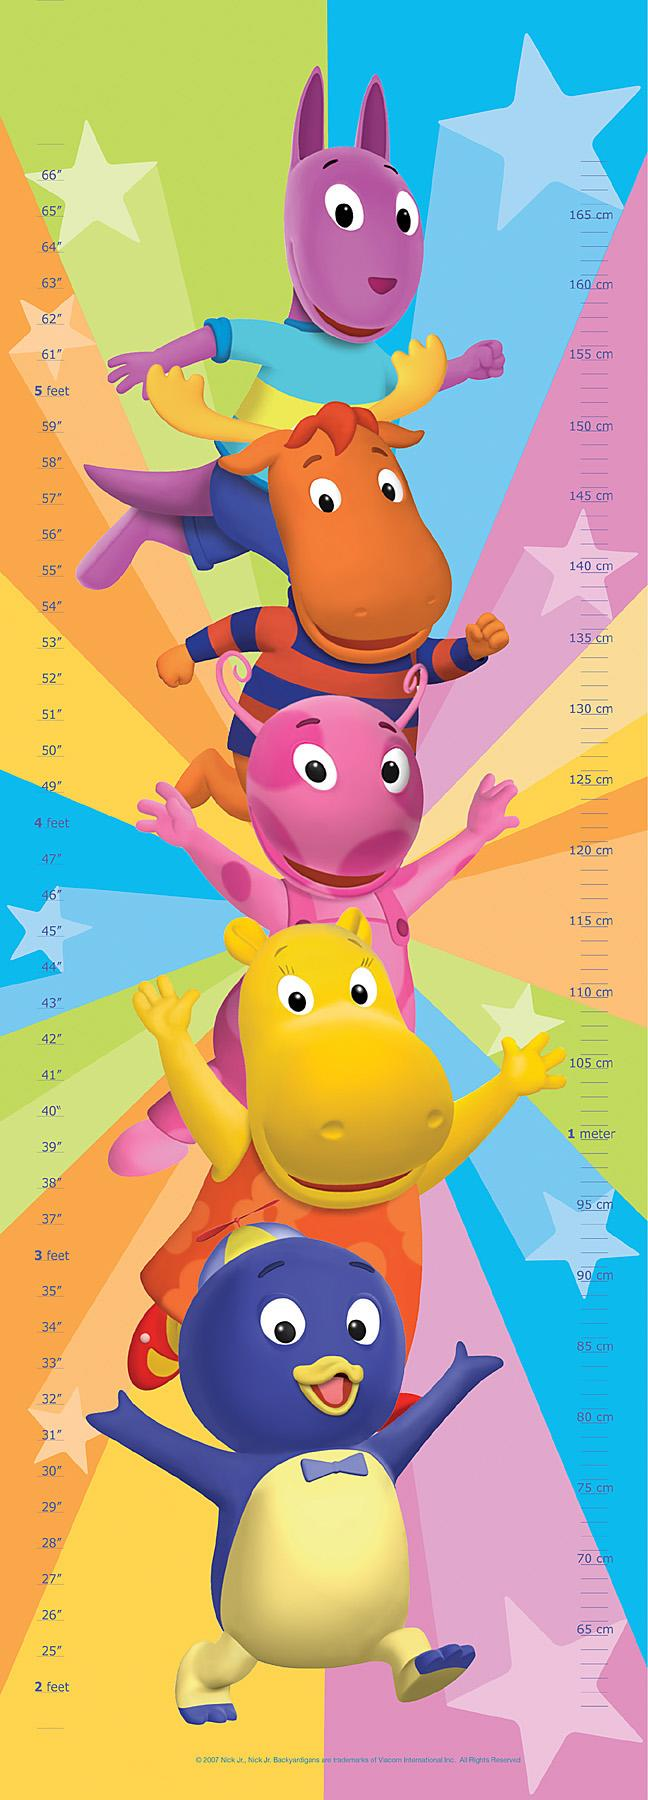 Brewster Wallcovering Backyardigans Growth Mural Wallpaper 648x1800